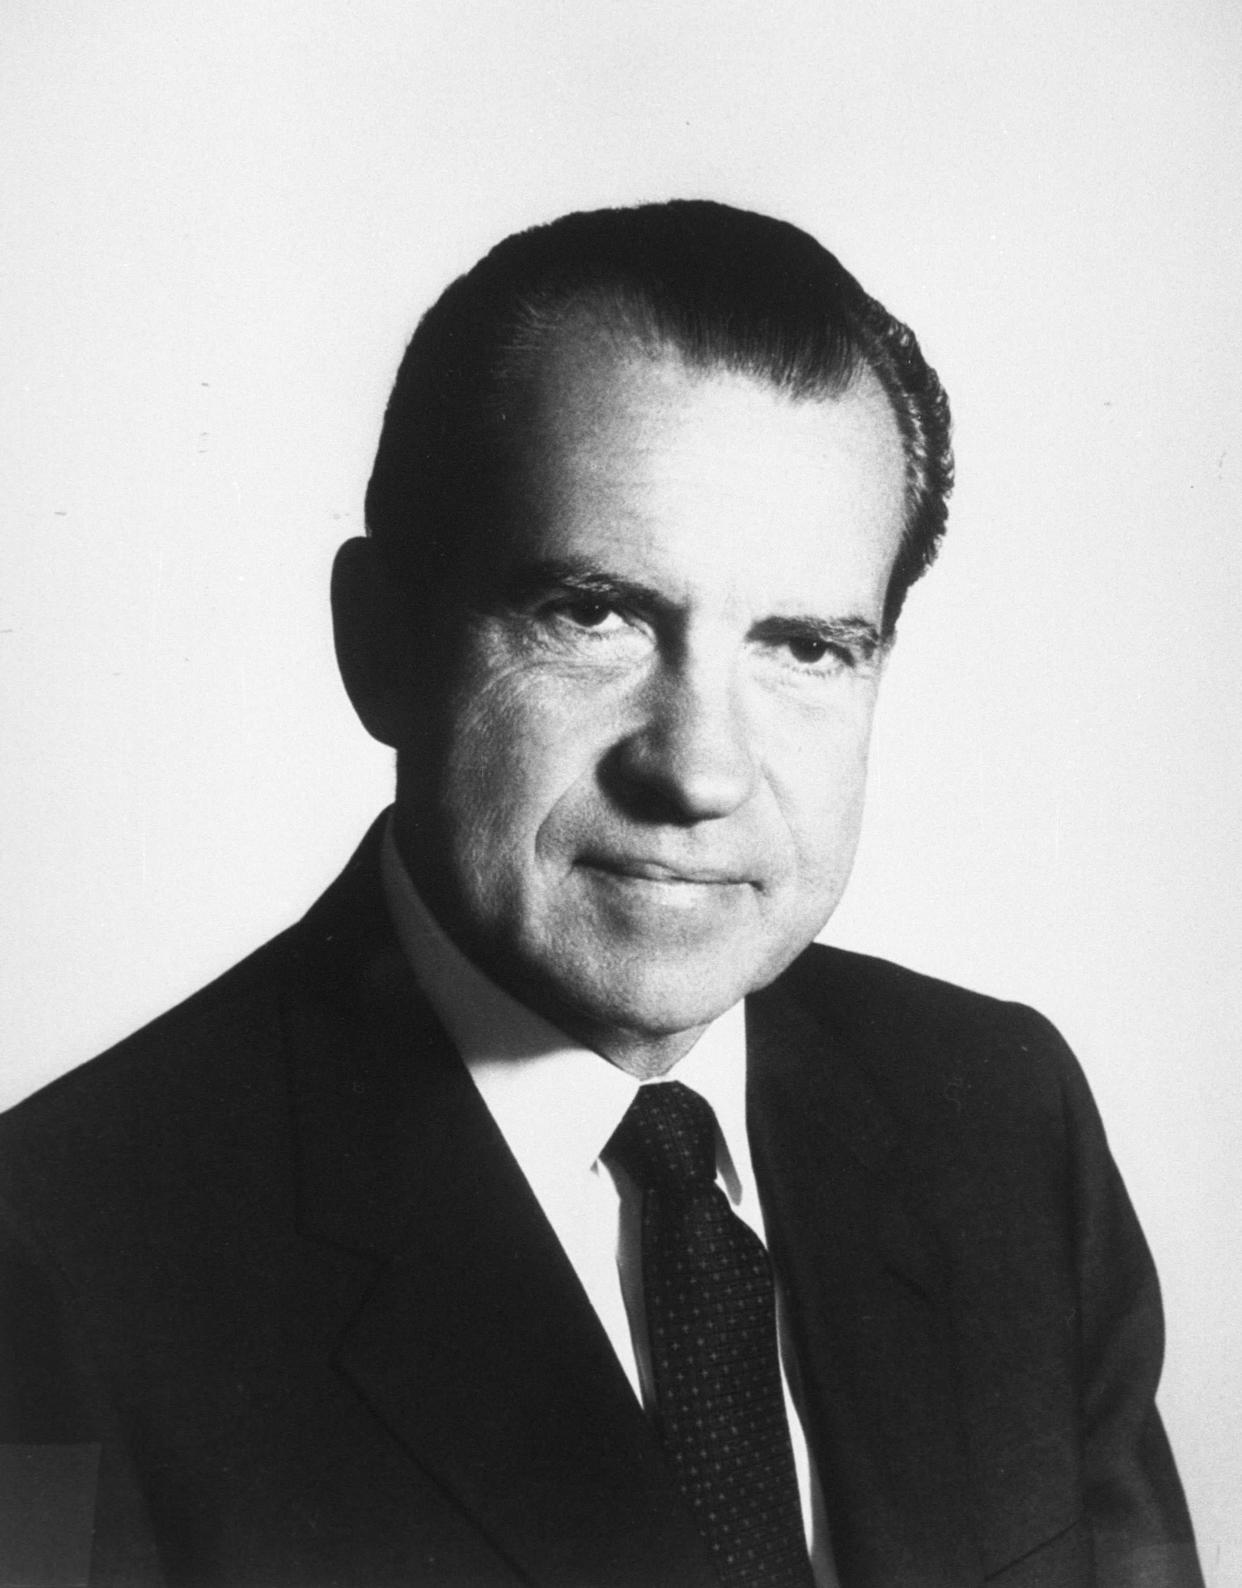 377869 37: (UNDATED FILE PHOTO) Portrait of 37th United States President Richard M. Nixon. June 17, 2002 is the 30th anniversary of the arrest of five burglars inside the Watergate complex in Washington, DC that eventually lead to Nixon being forced from office. Nixon died in 1994. (Photo by National Archives/Getty Images)